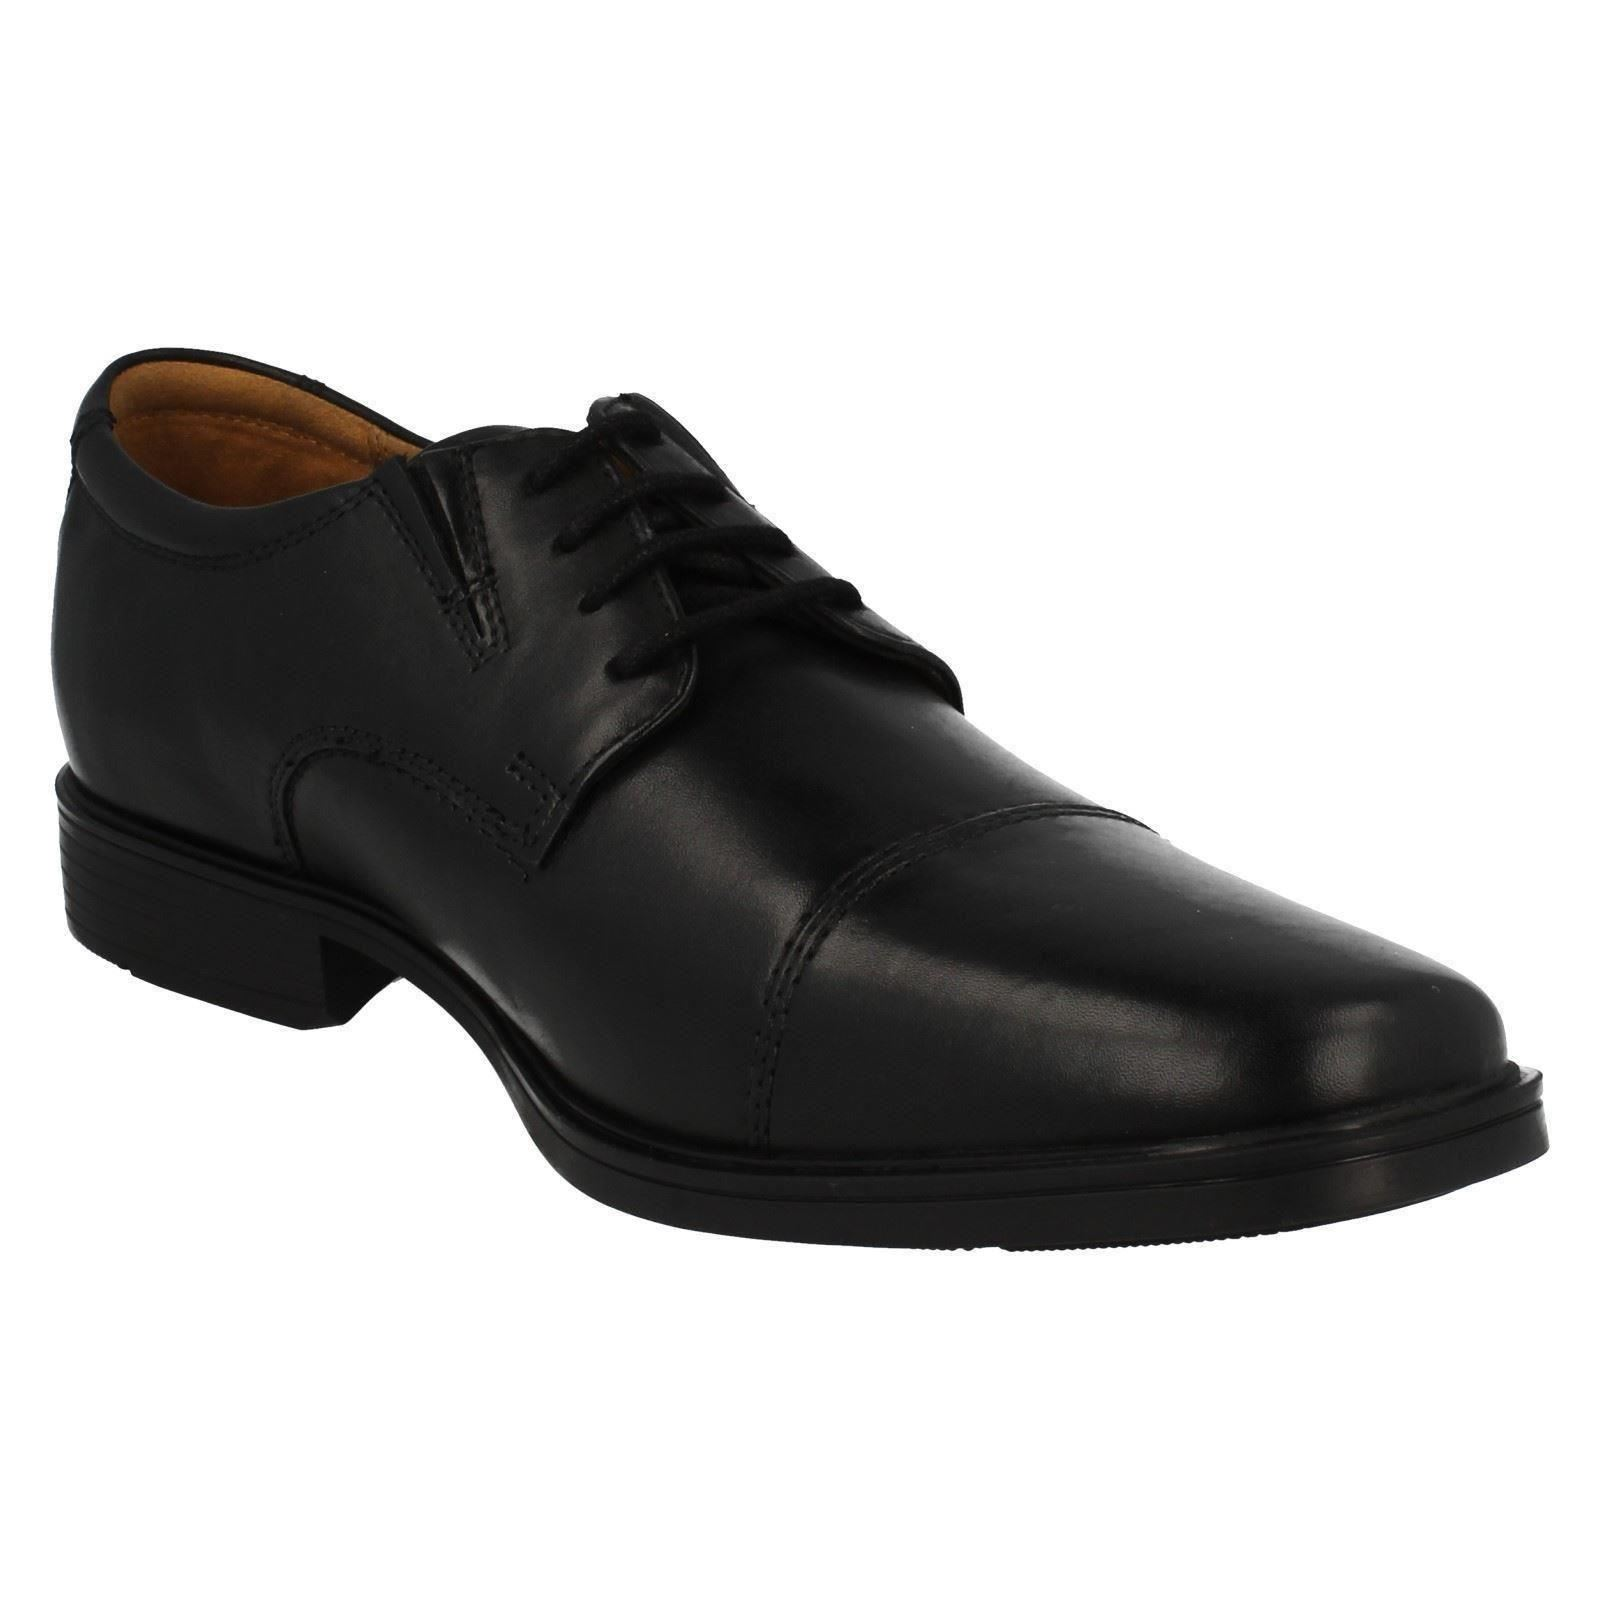 Mens-Clarks-Formal-Lace-Up-Shoes-Tilden-Cap thumbnail 3